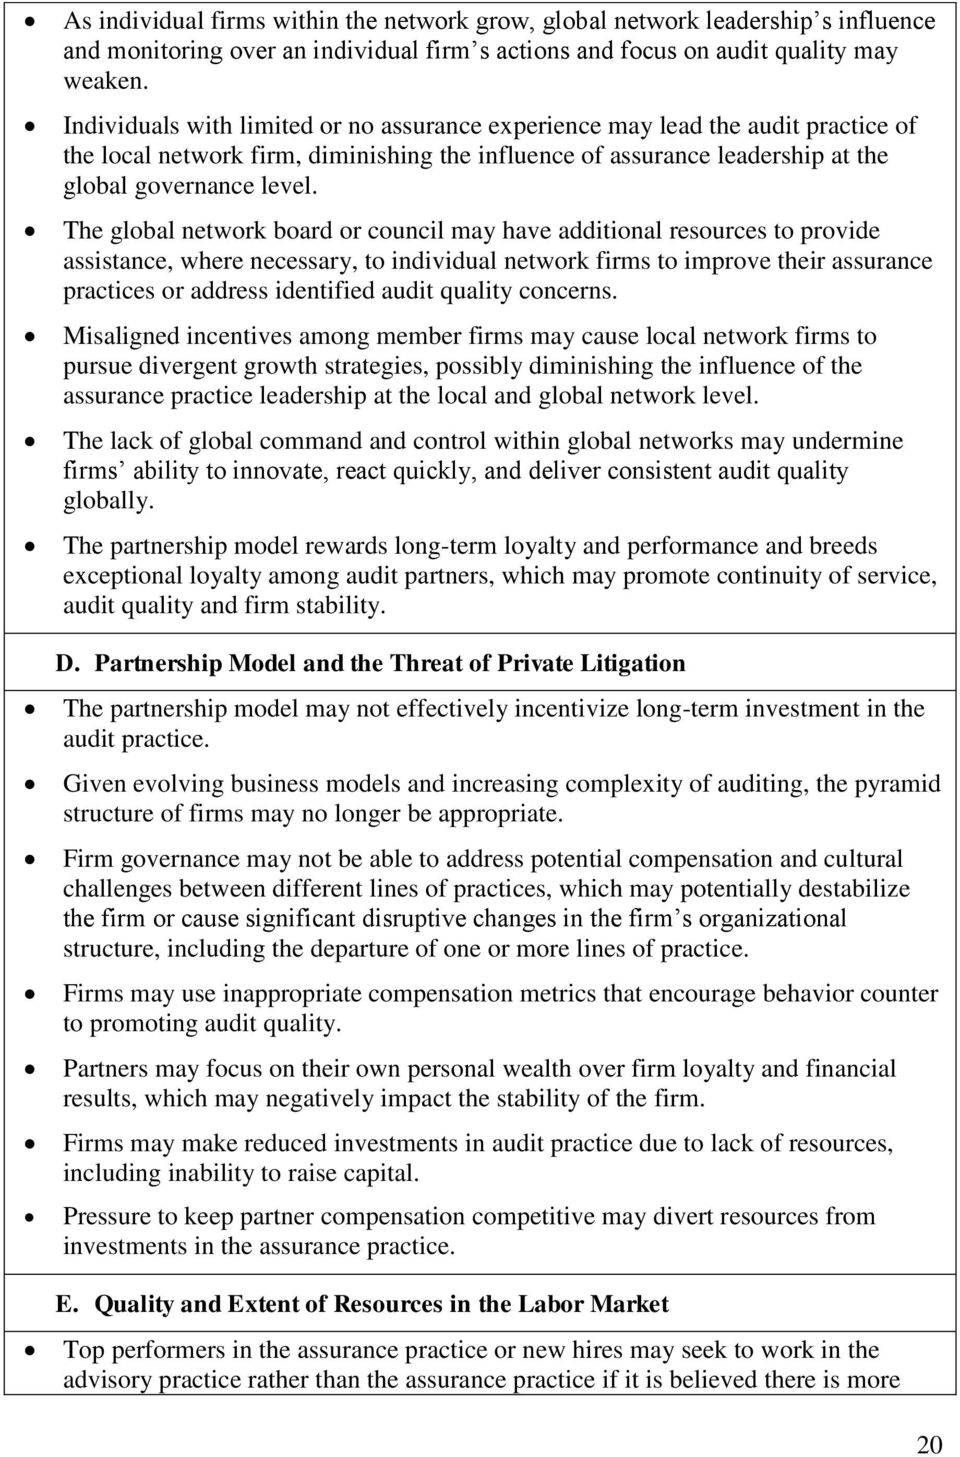 The global network board or council may have additional resources to provide assistance, where necessary, to individual network firms to improve their assurance practices or address identified audit